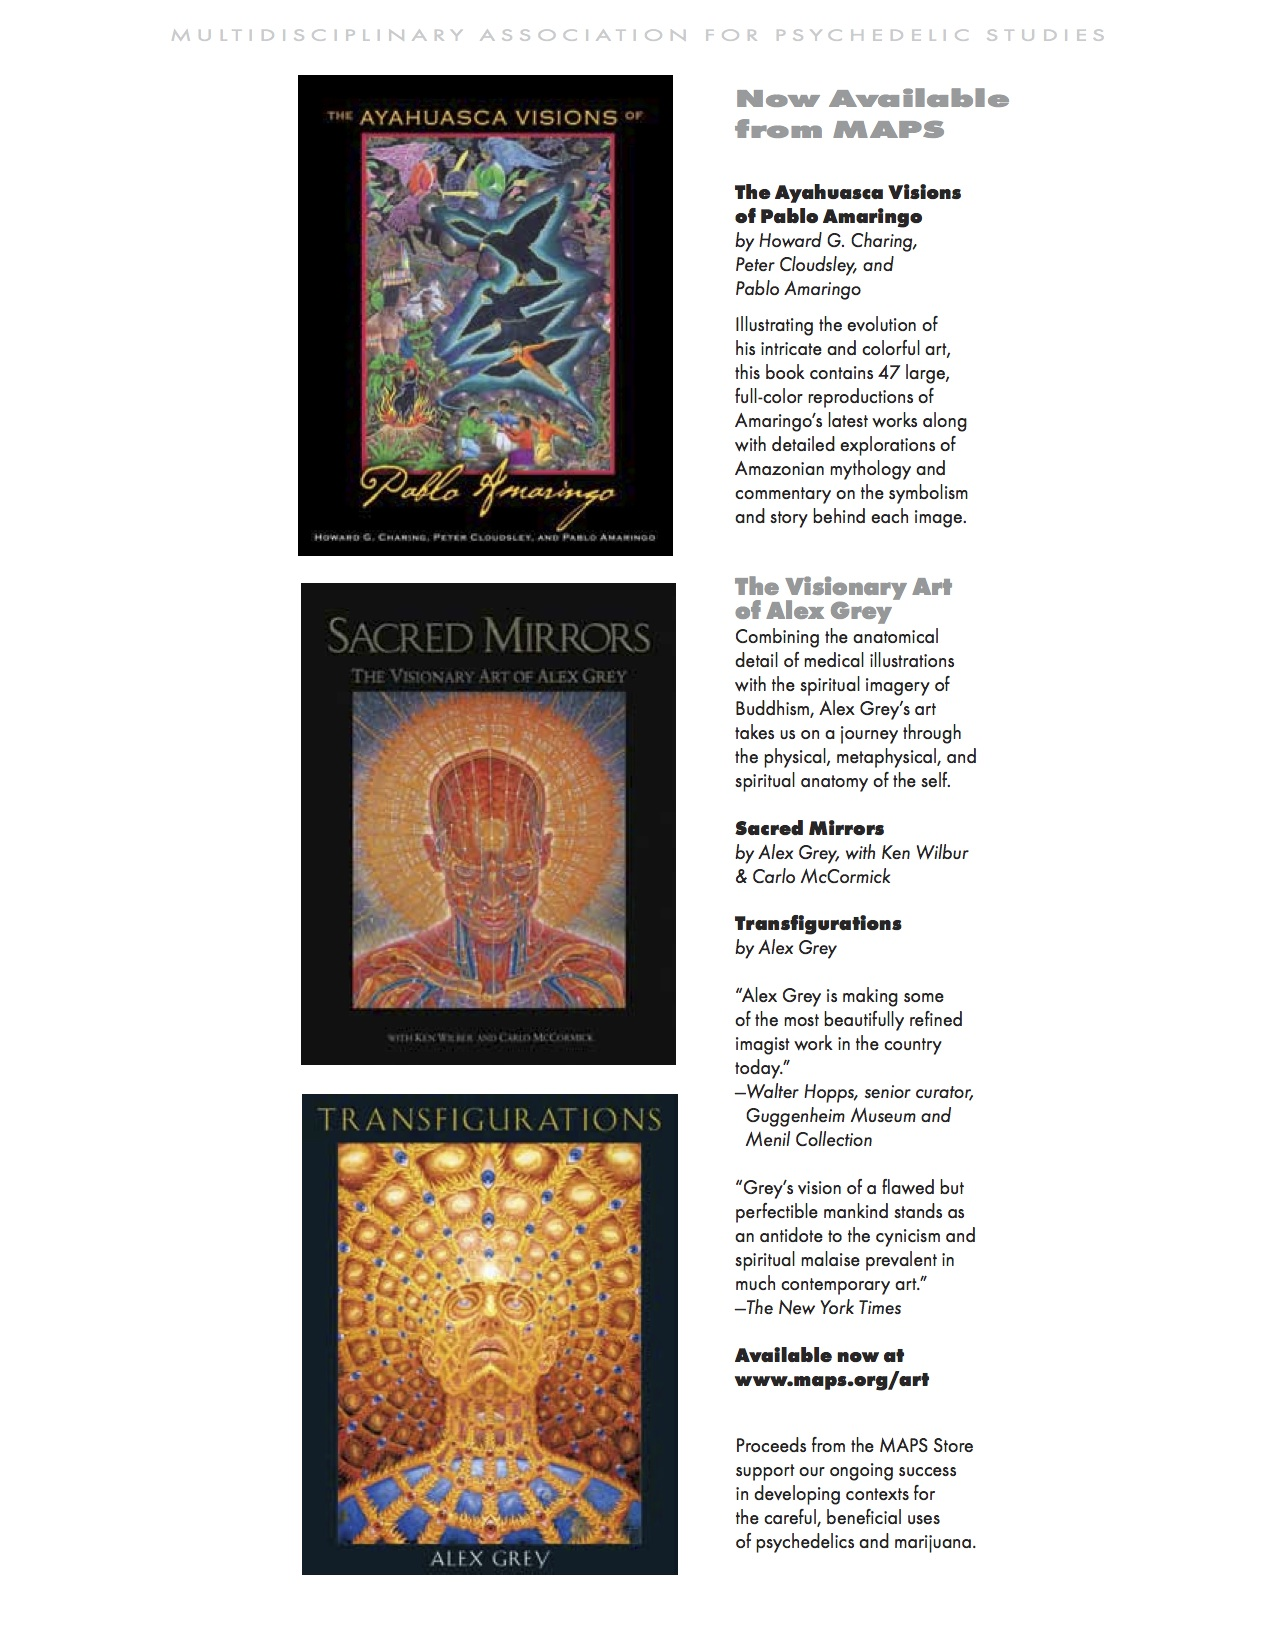 MAPS Bulletin Vol xxii No 1: Spring 2012 - Inside Cover Image - Psychedelic Art - Now Available from MAPS by Pablo Amaringo / Alex Grey